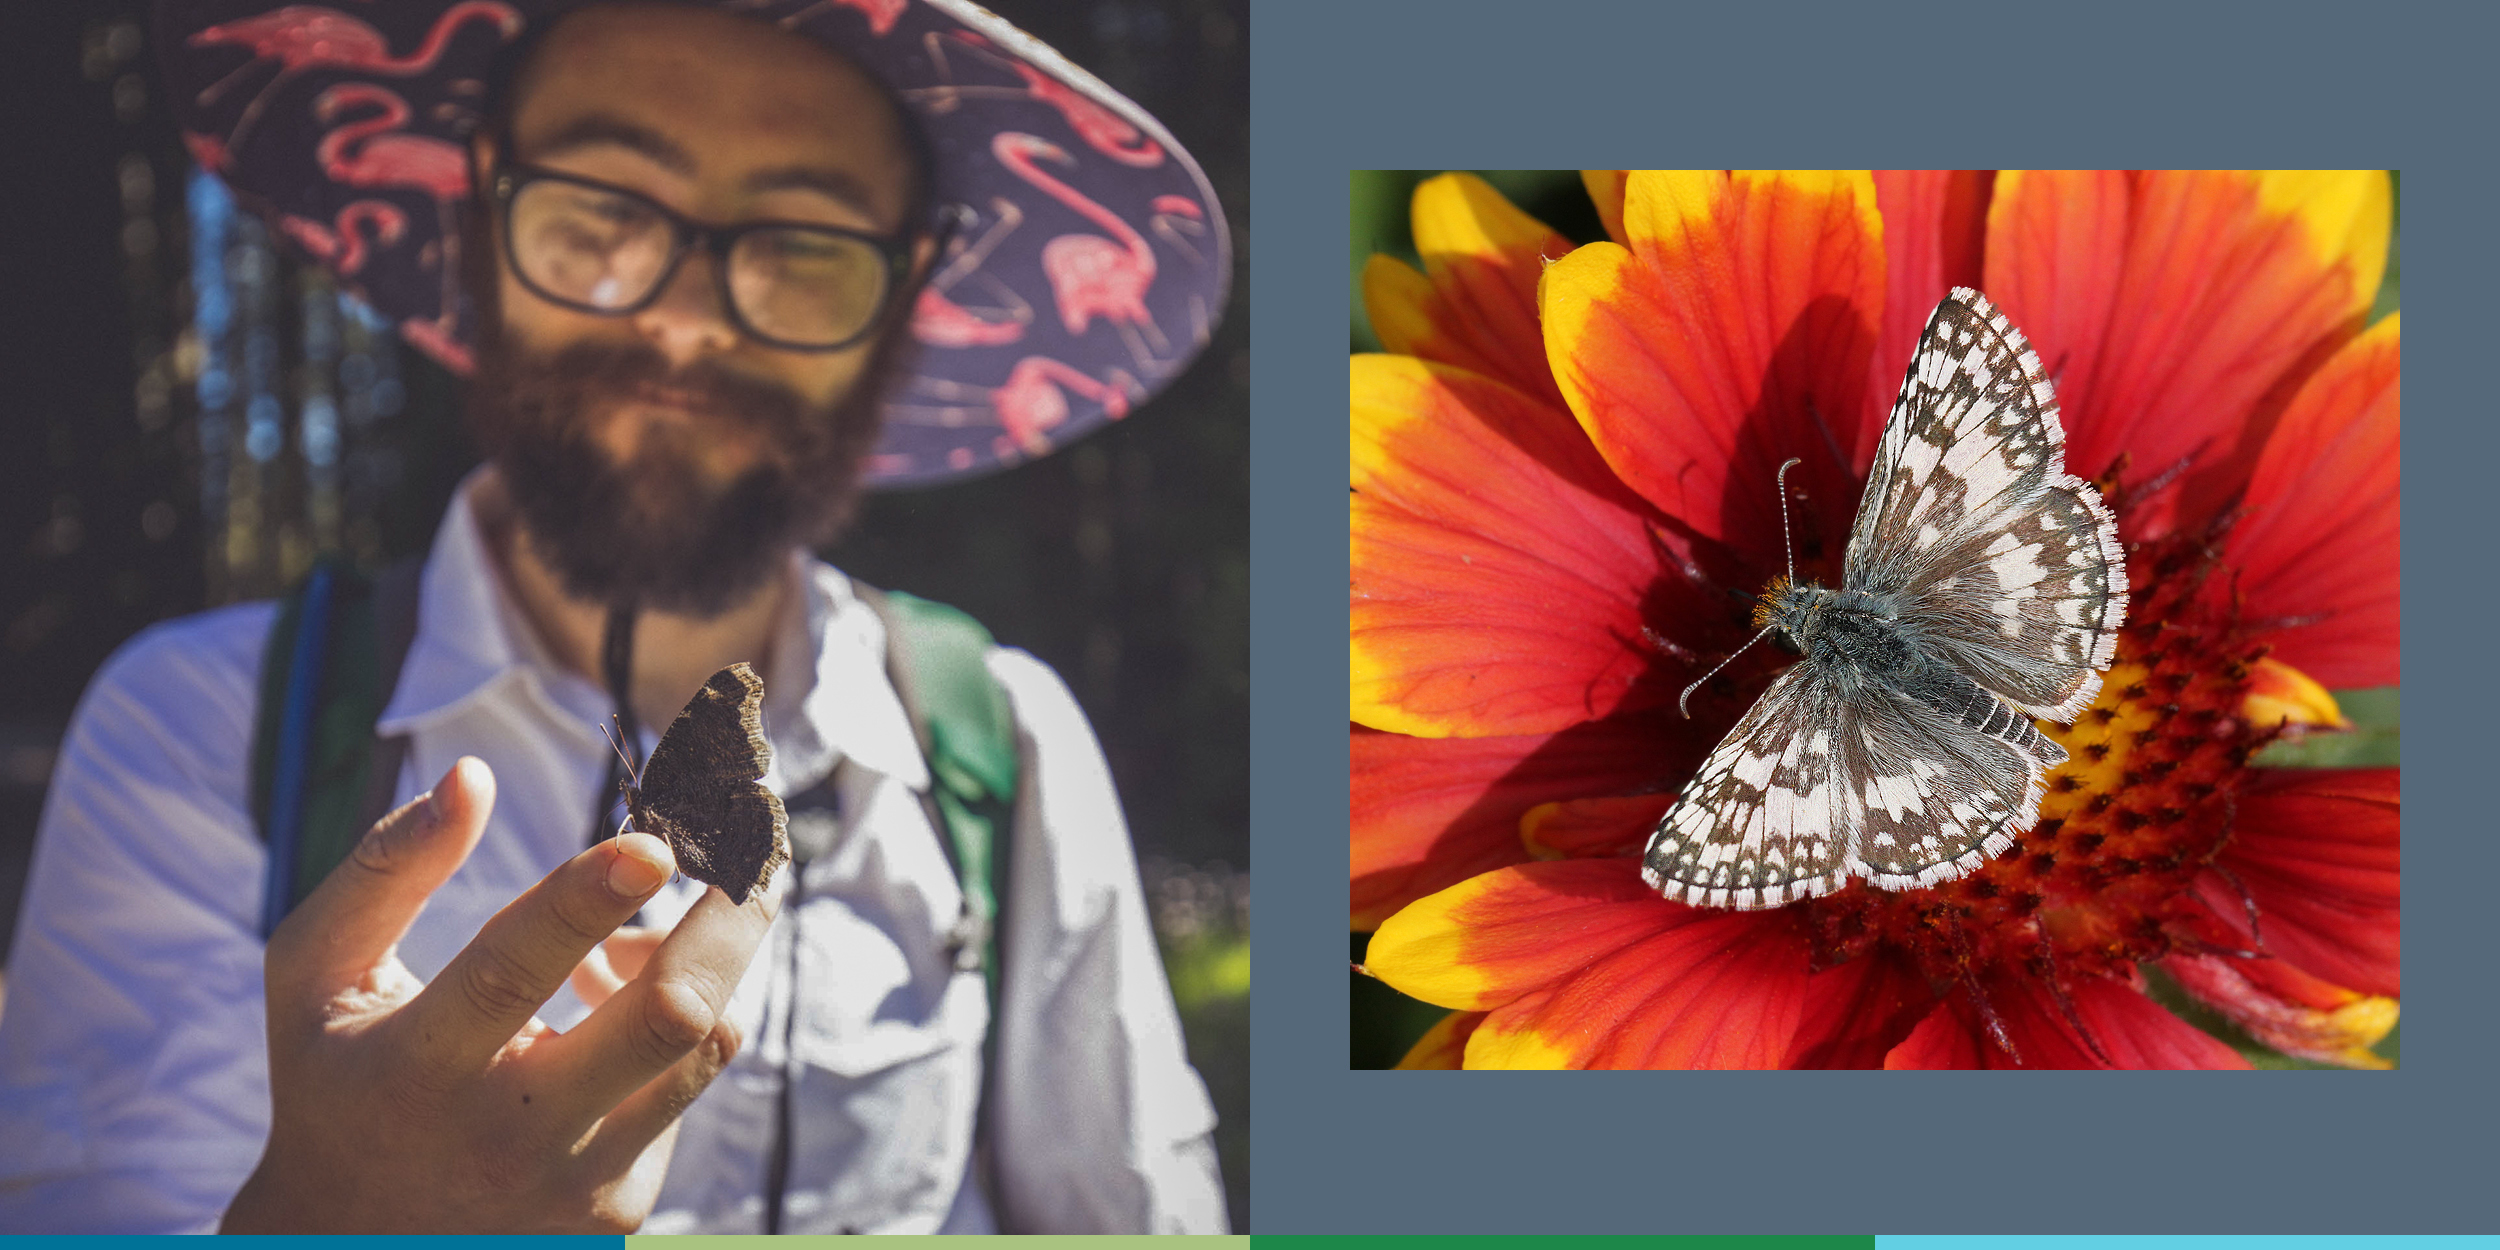 This composite image shows, on the left, a young bearded man admiring a butterfly sitting on his fingers and, on the right, a small brown and white butterfly resting in the center of a red and yellow flower